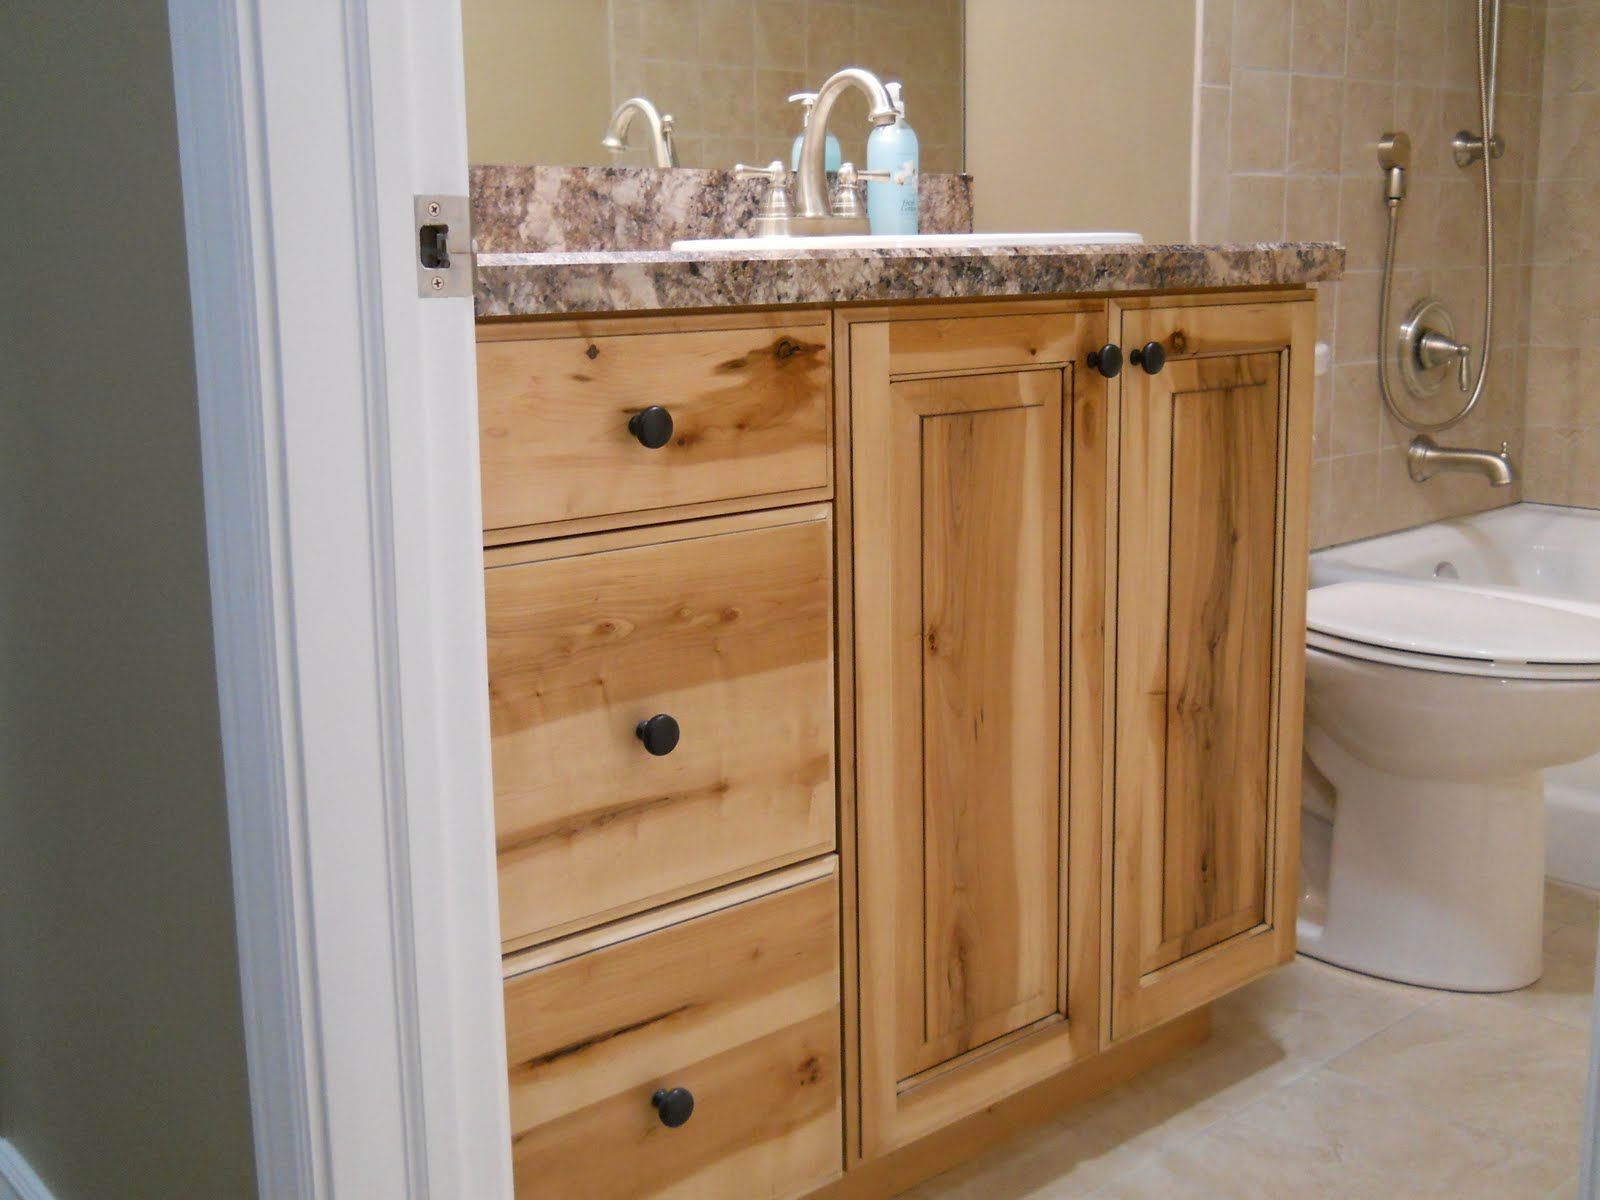 rustic pine bathroom vanities. KNOTTY PINE CABINET...Rustic Bathroom Vanities | Newly Finished Basement Cabinets In Rustic Pine I